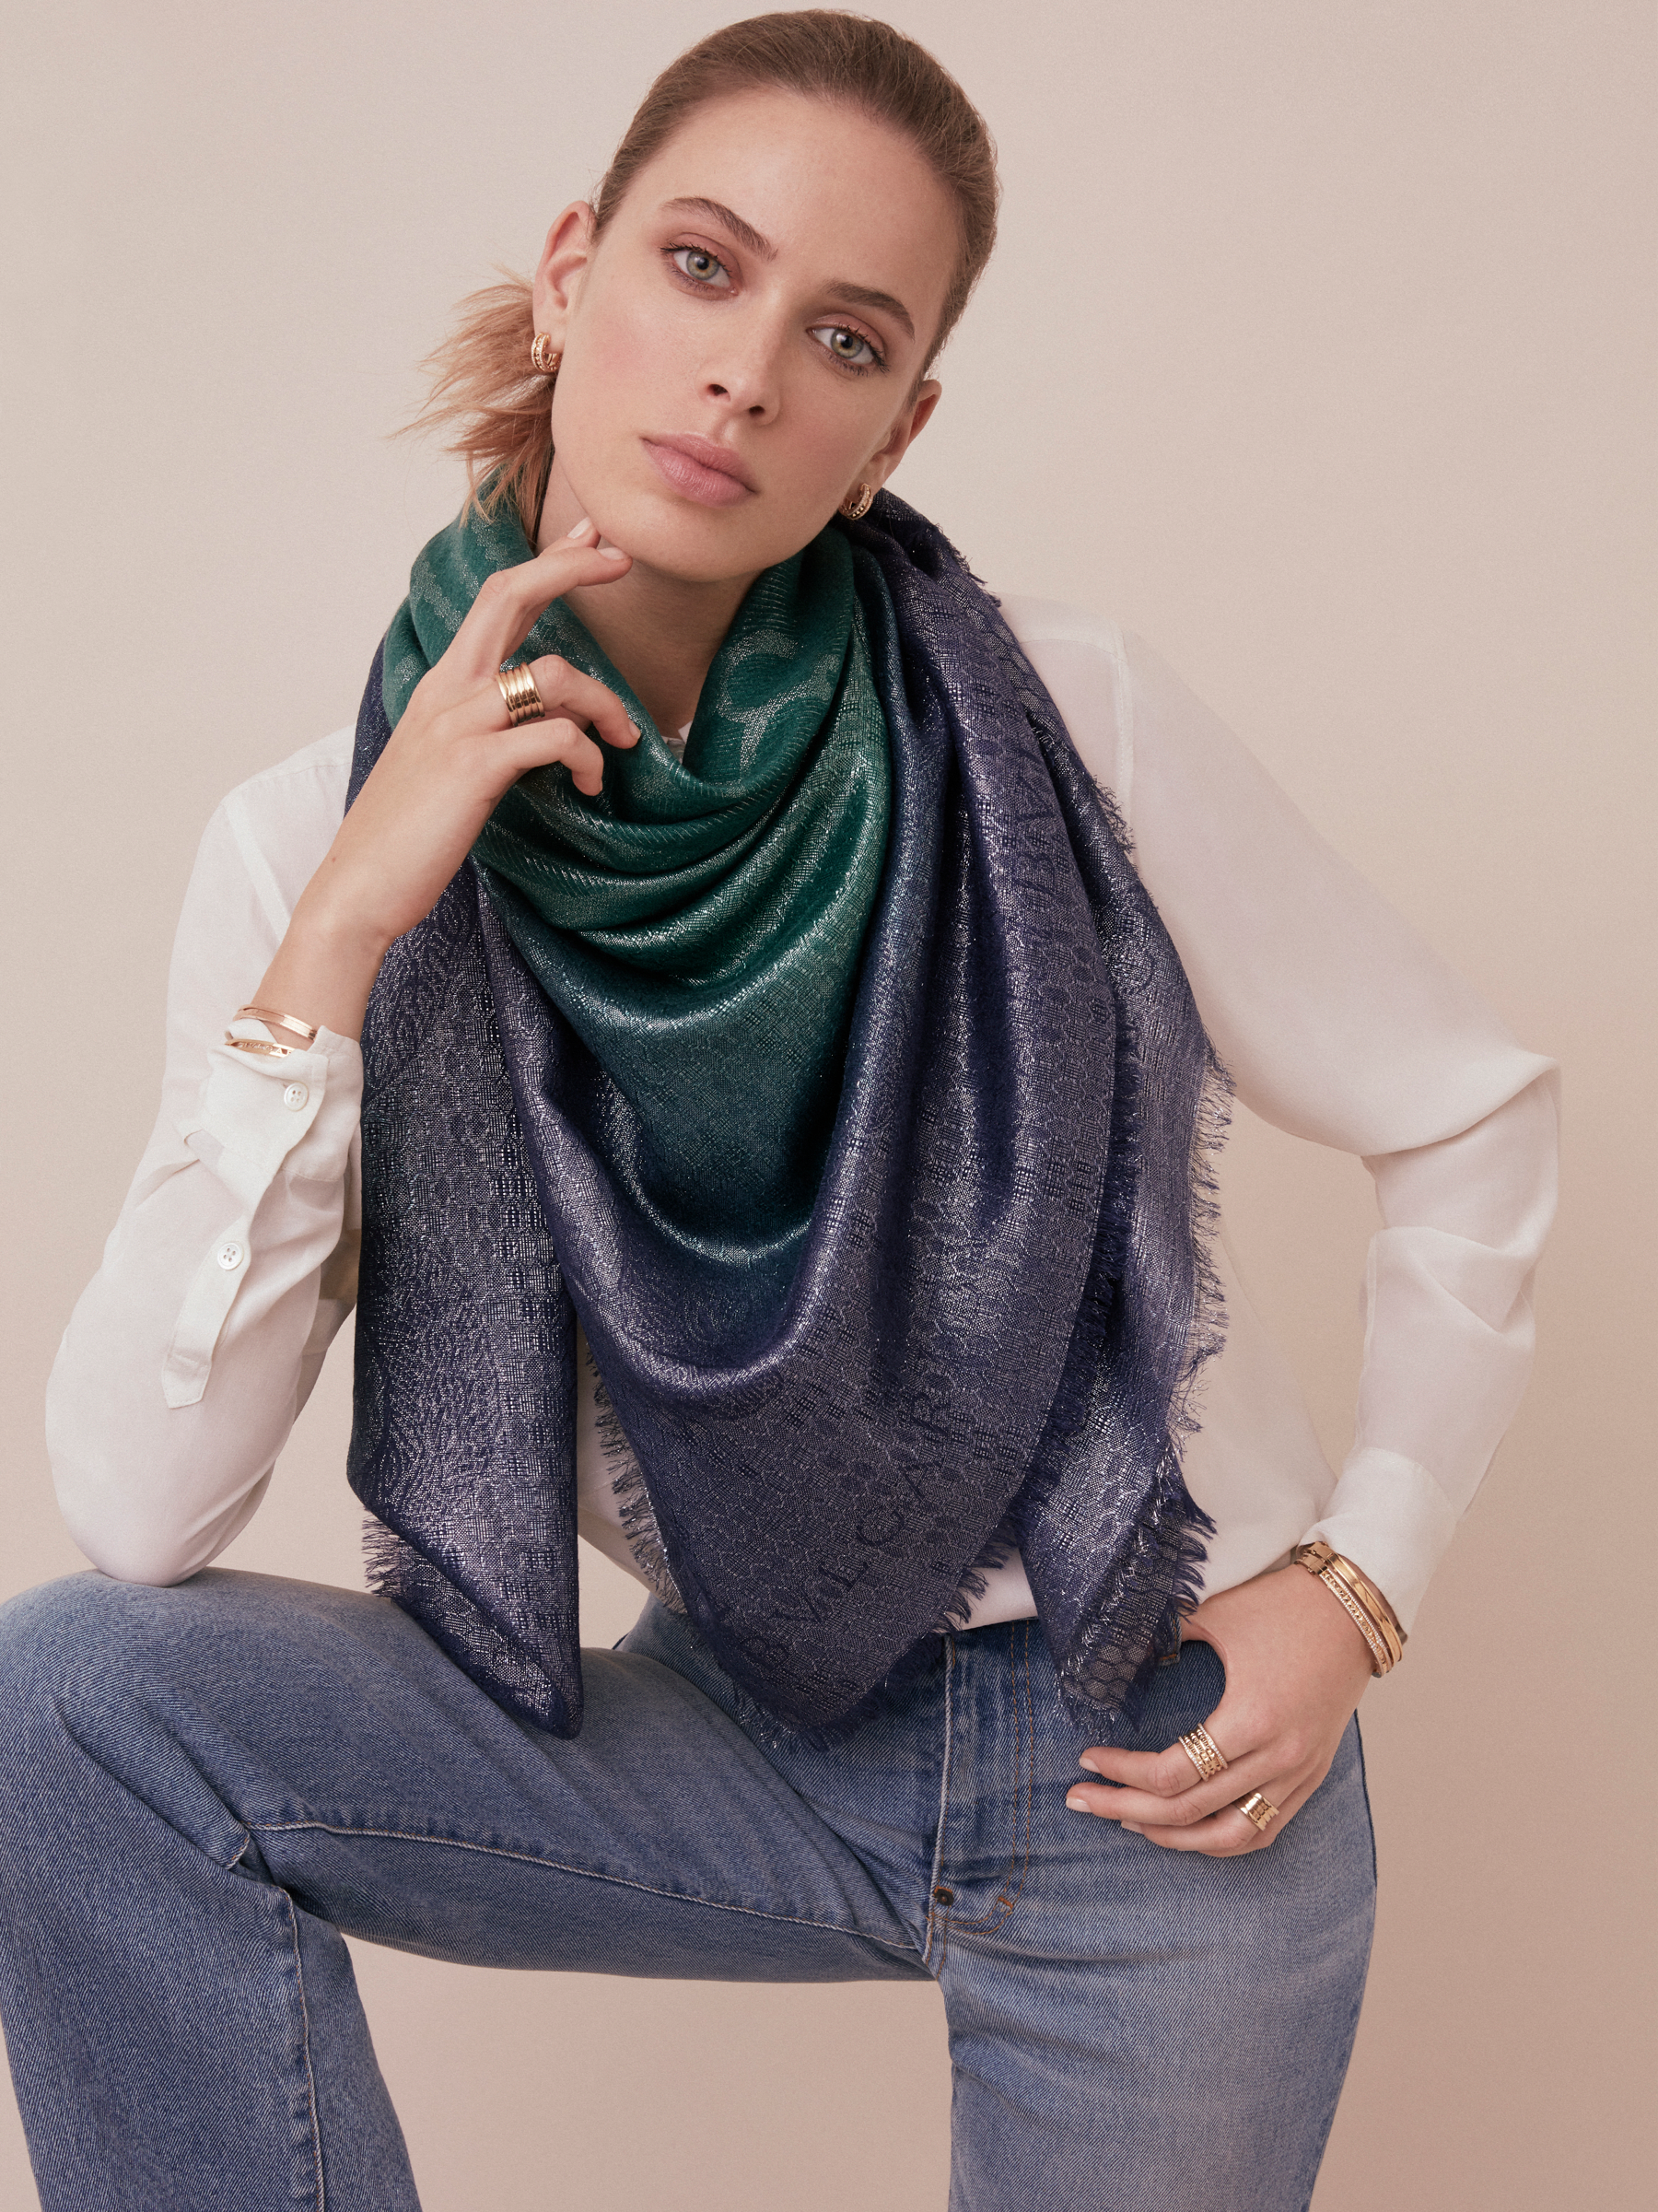 "Crystal rose ""SNAKE SPARKING"" scarf in fine wool, silk, cashmere and lurex SNAKESPARKLING image 2"